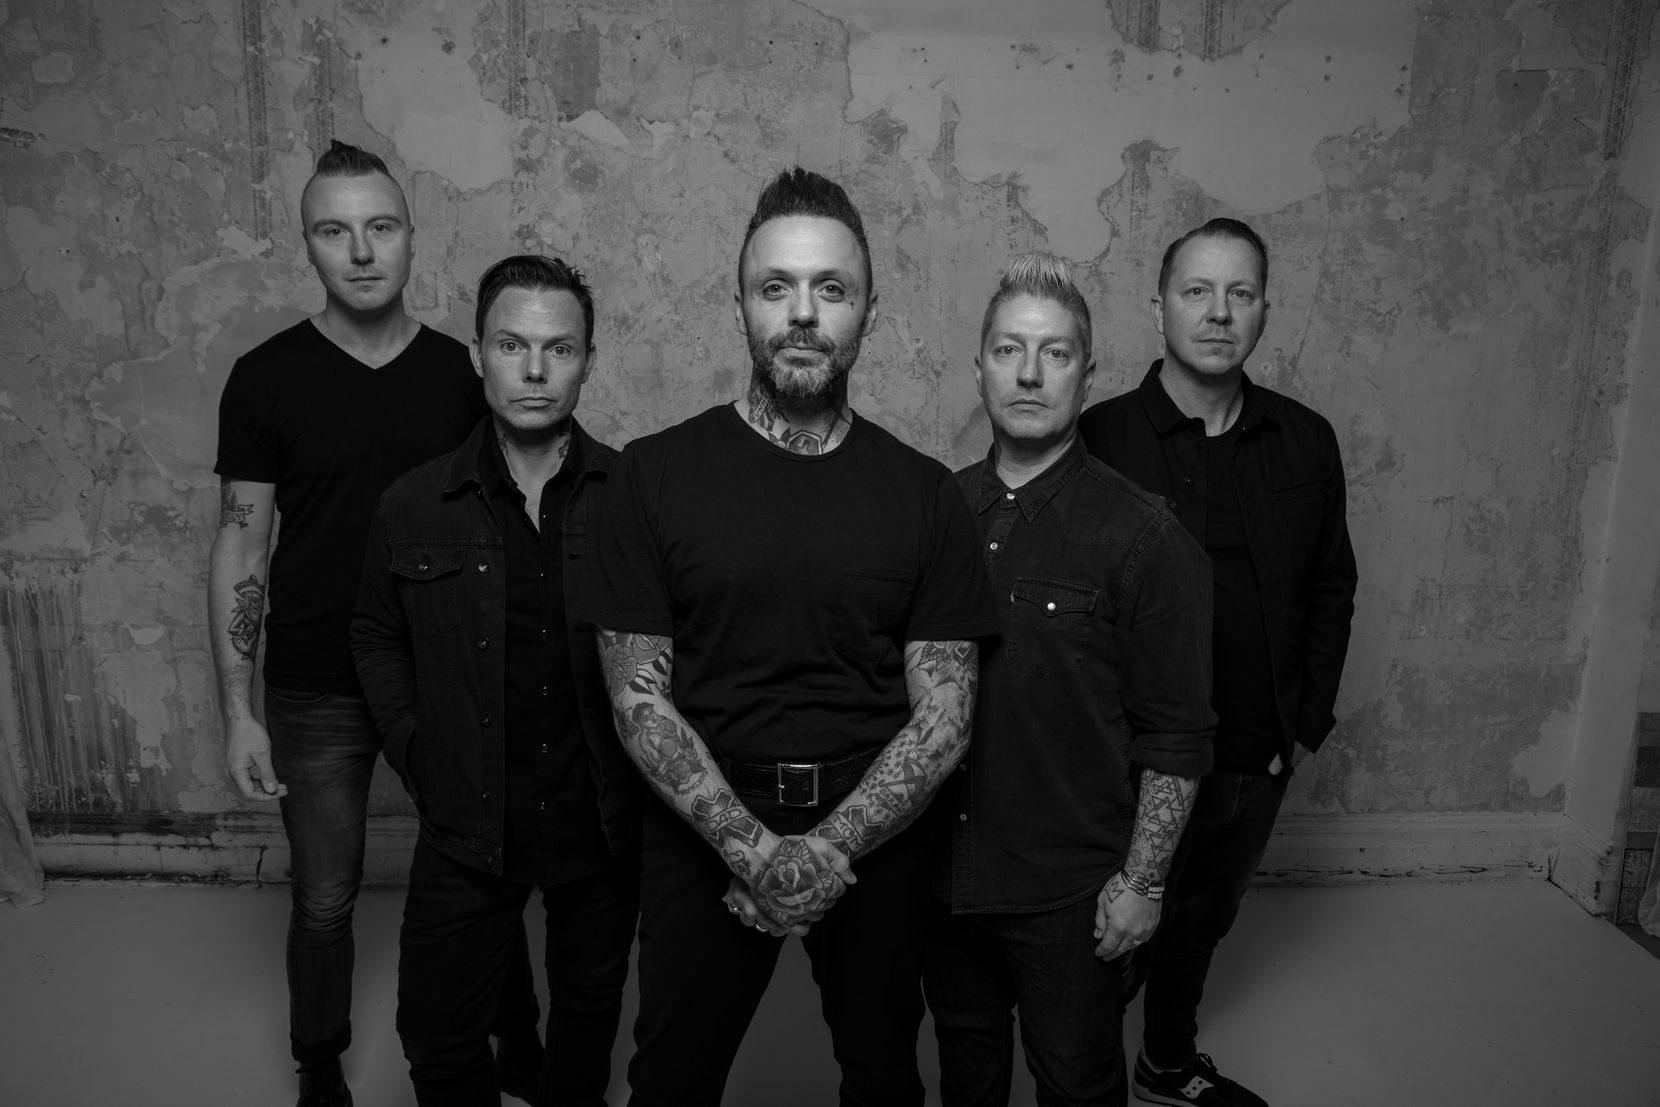 Blue October will open the HiFi Dallas on May 15.